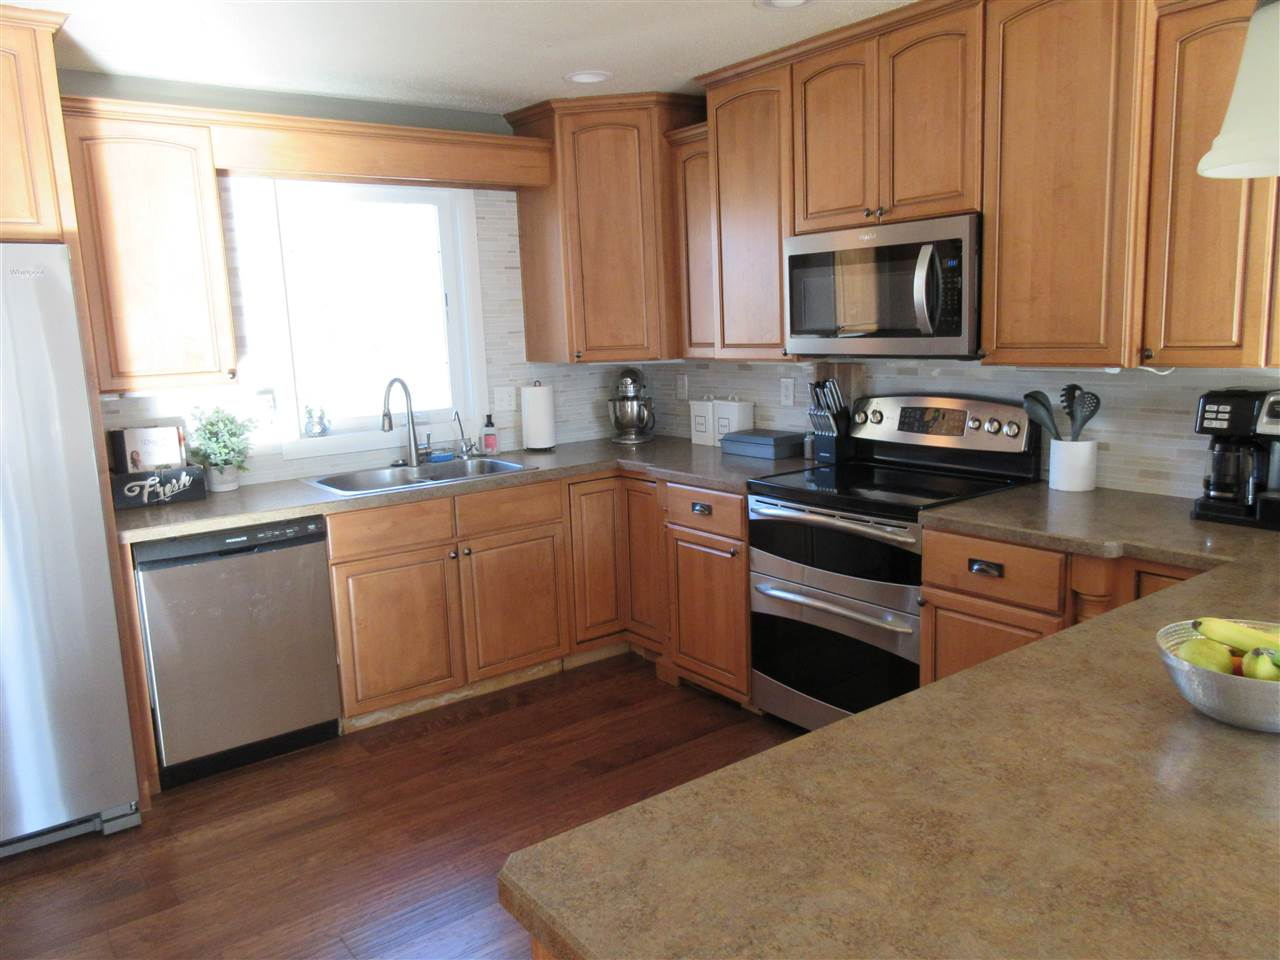 Homes For Sale at Timberline Trail